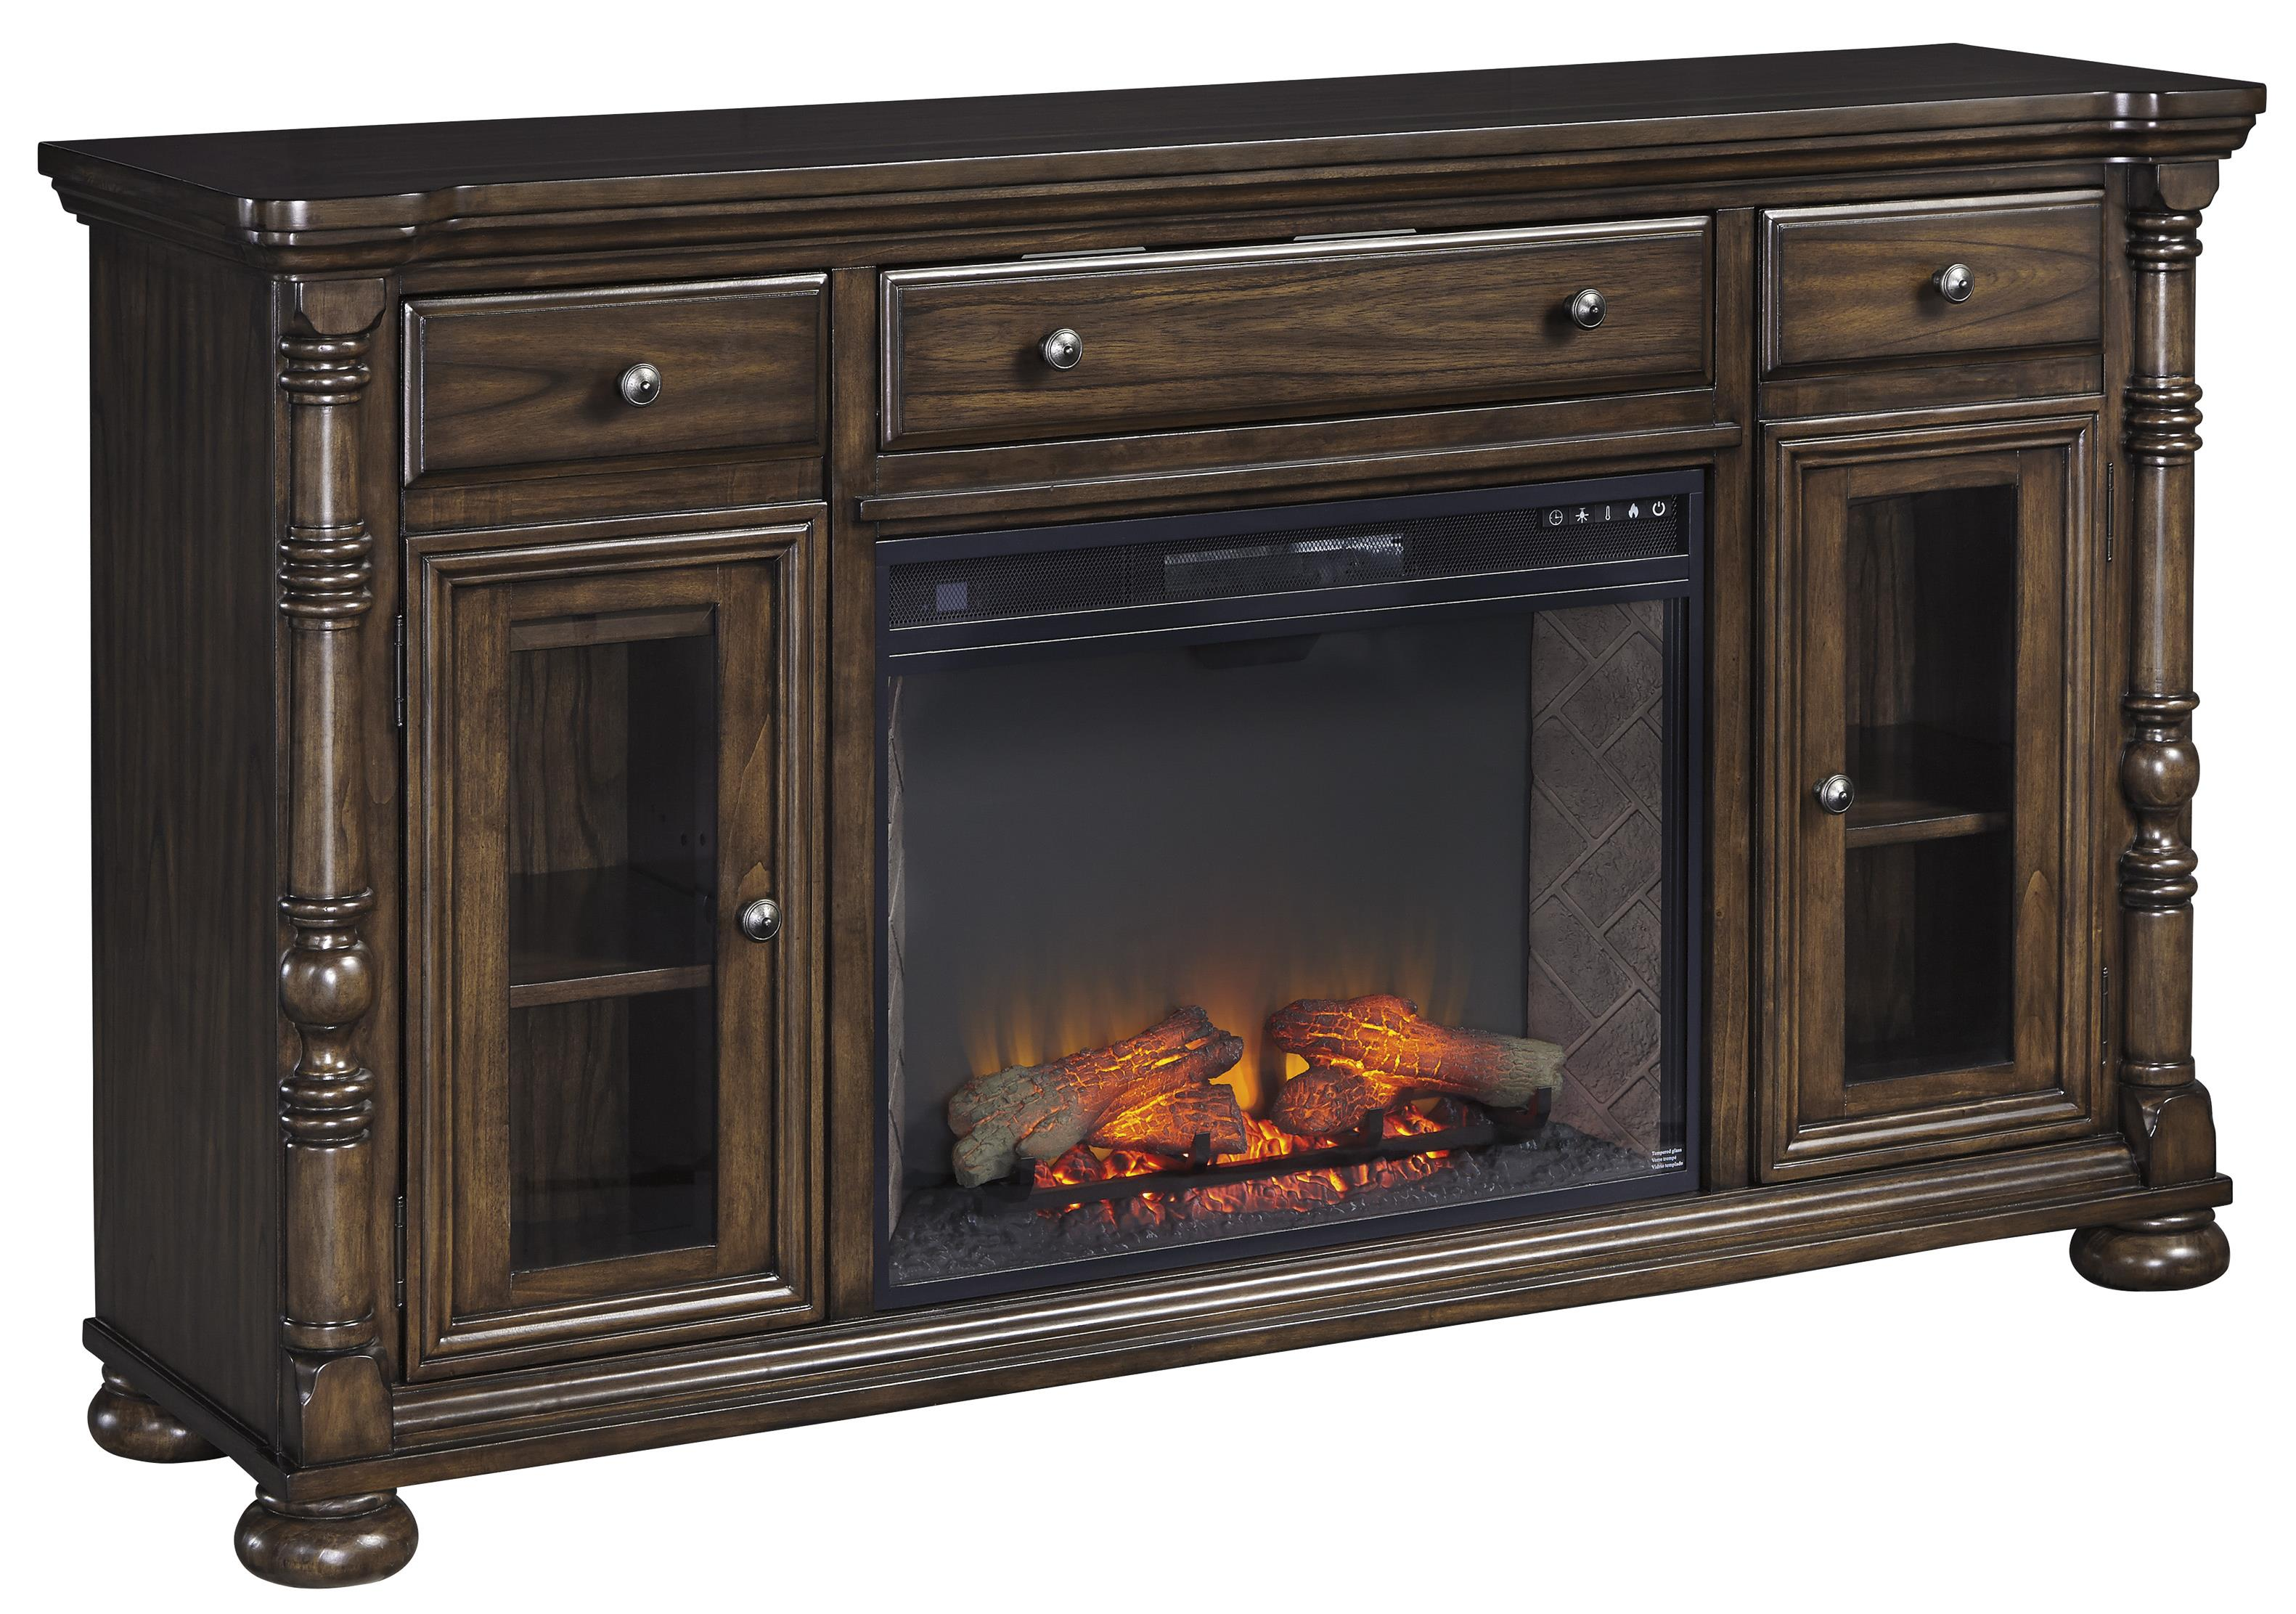 Signature Design by Ashley Brosana Extra Large TV Stand w/ Fireplace Insert - Item Number: W528-68+W100-21